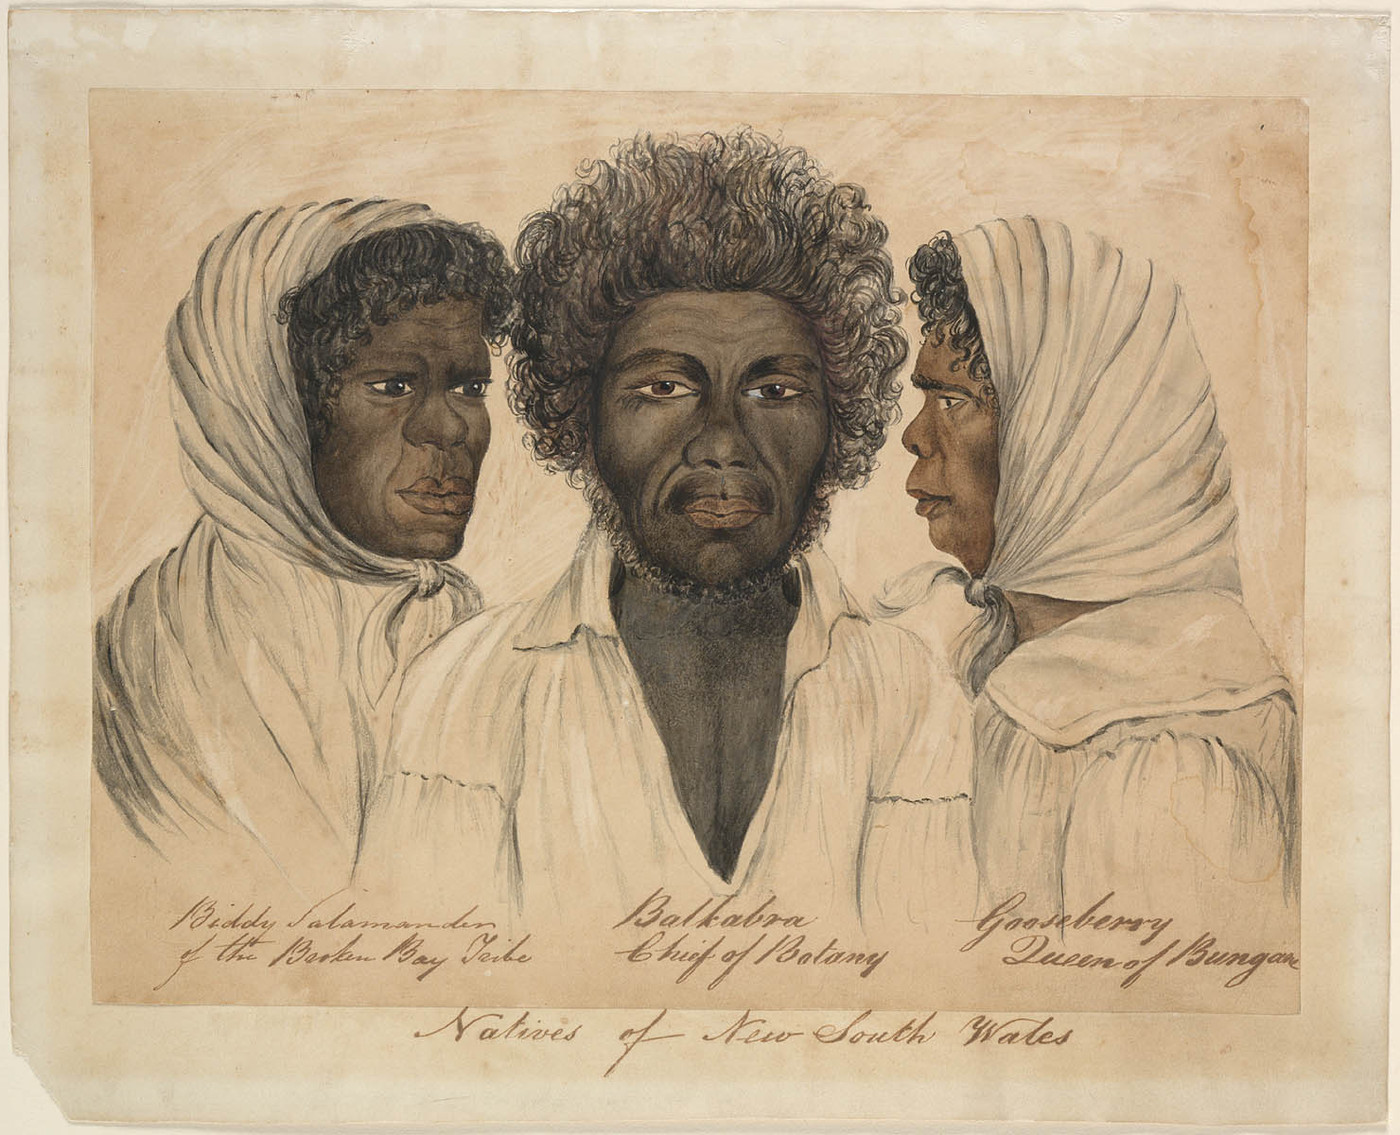 Although Lincoln had announced the Emancipation Proclamation two years earlier, freedom did not come for most African Americans until Union victory in April and, officially, in December with the ratification of the 13th Amendment to the Constitution.